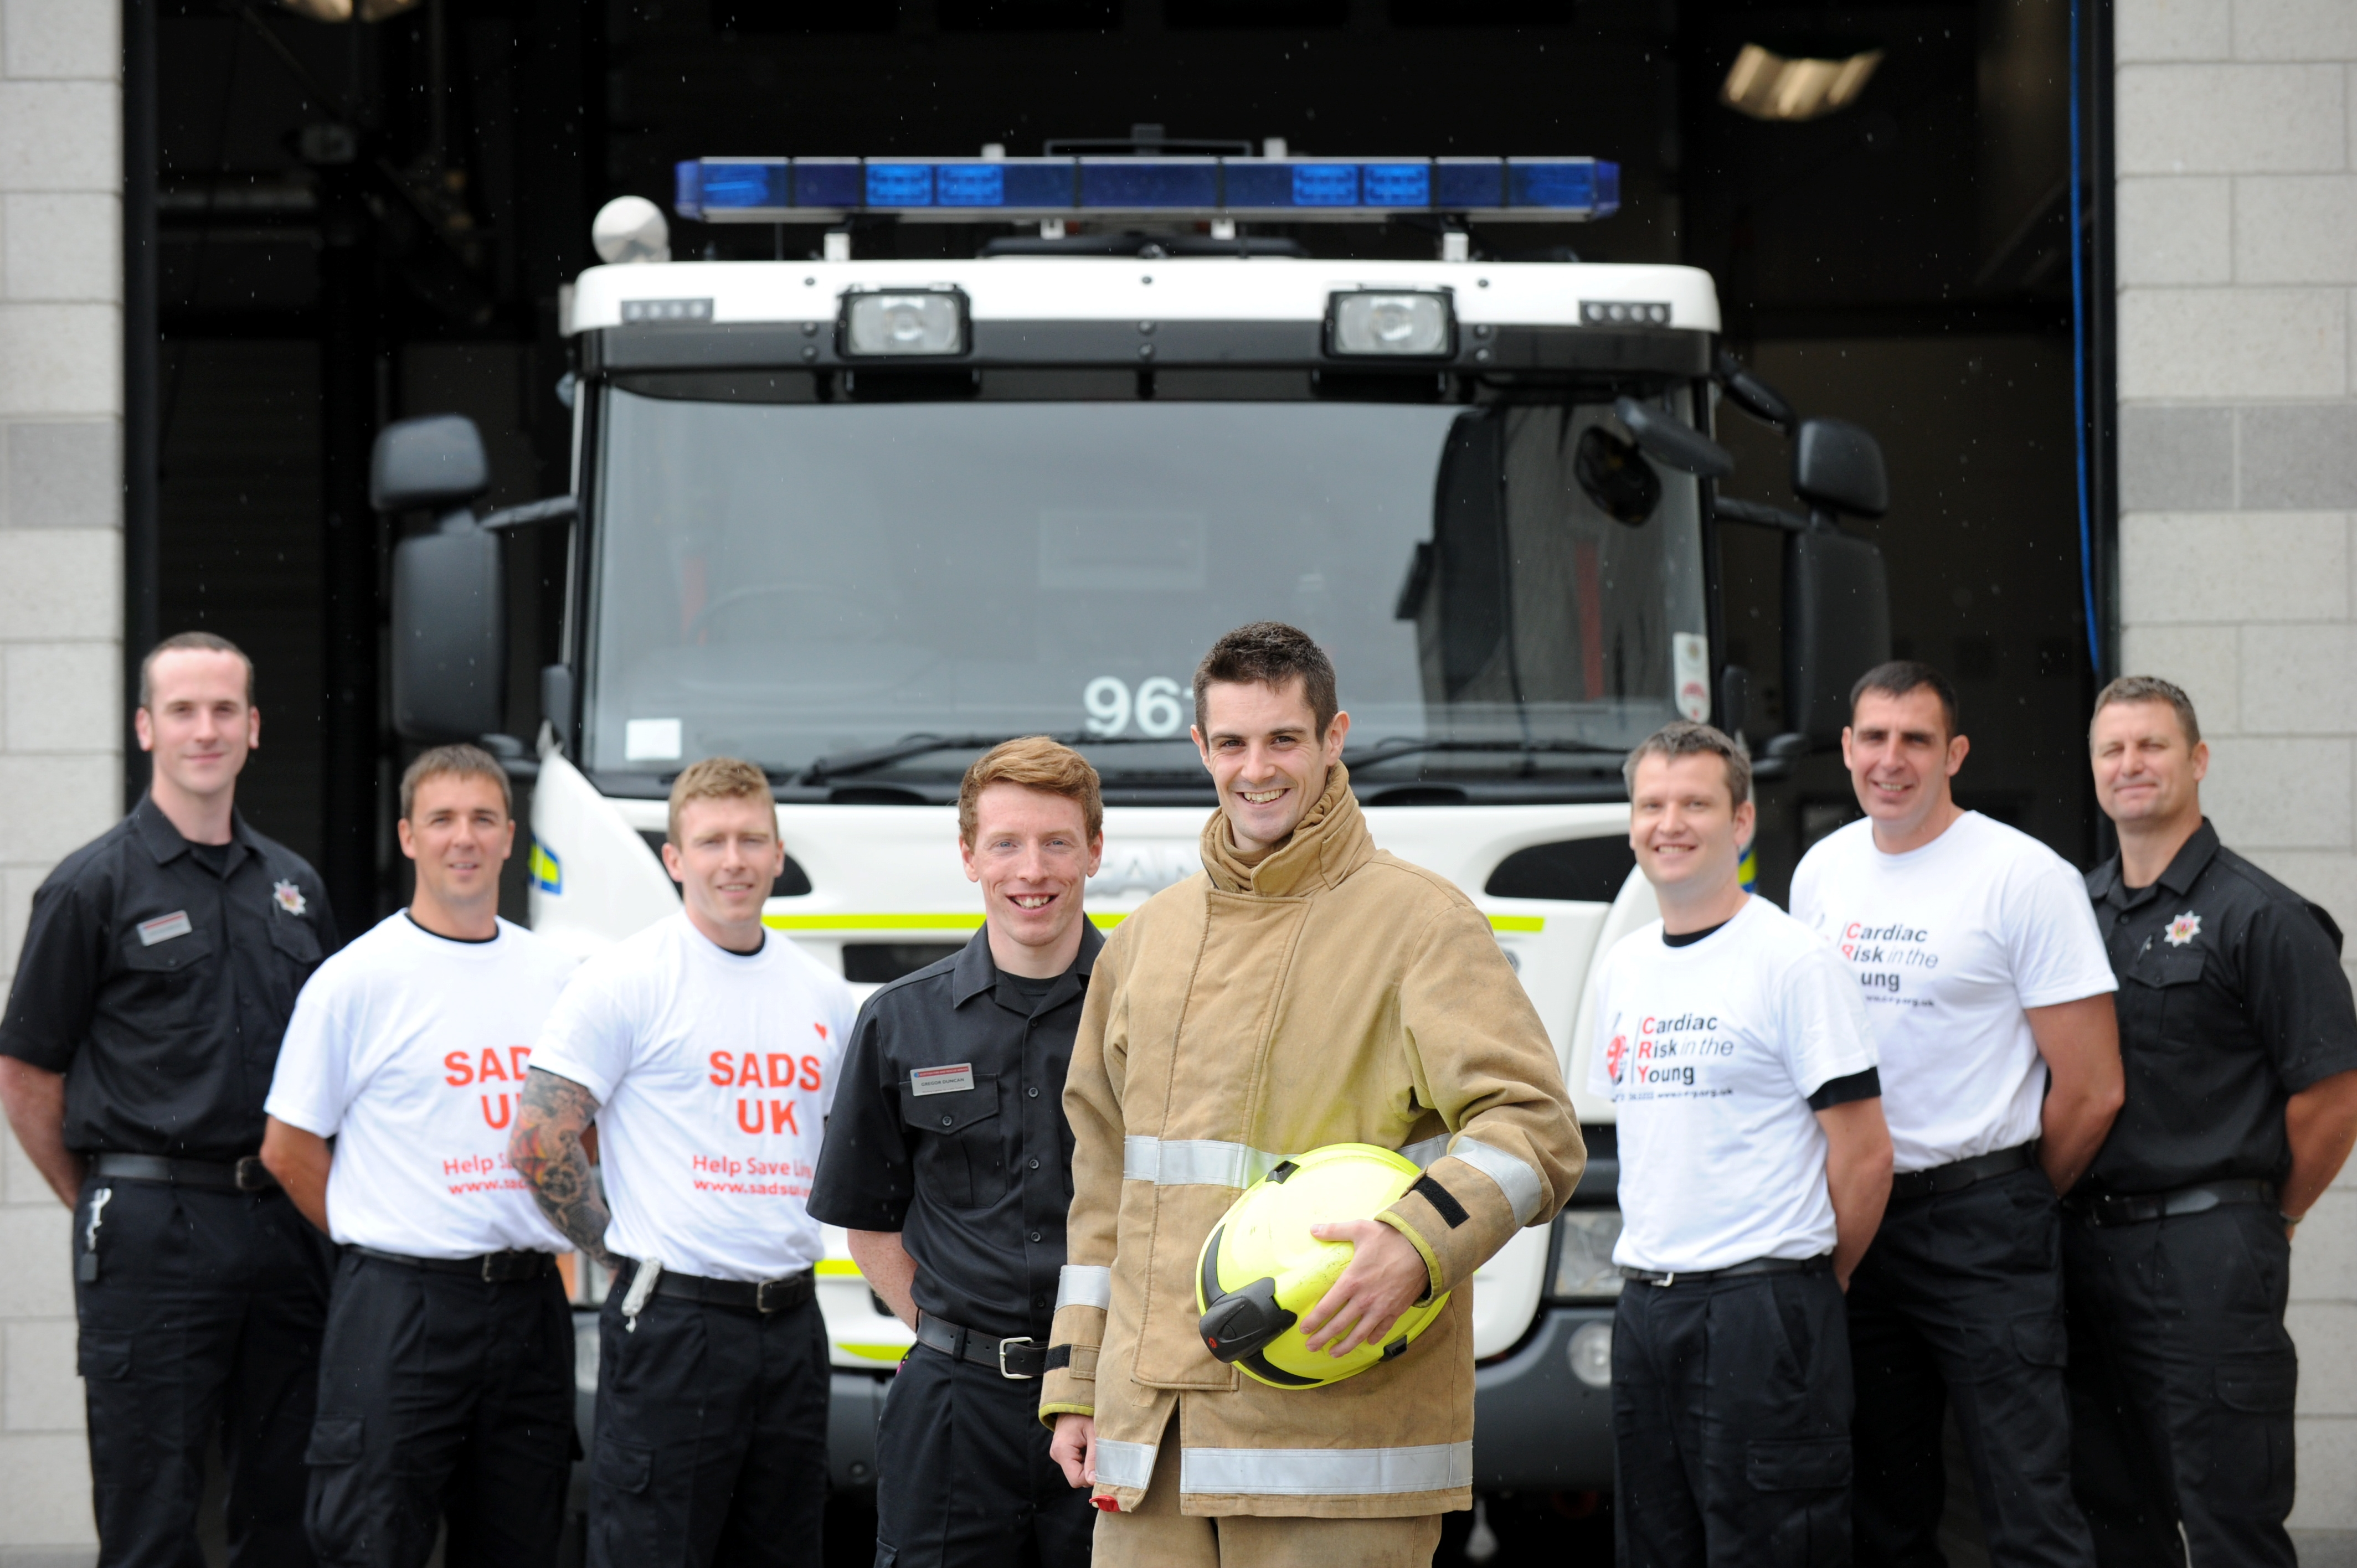 Firefighters taking on 3 peaks challenge for charity